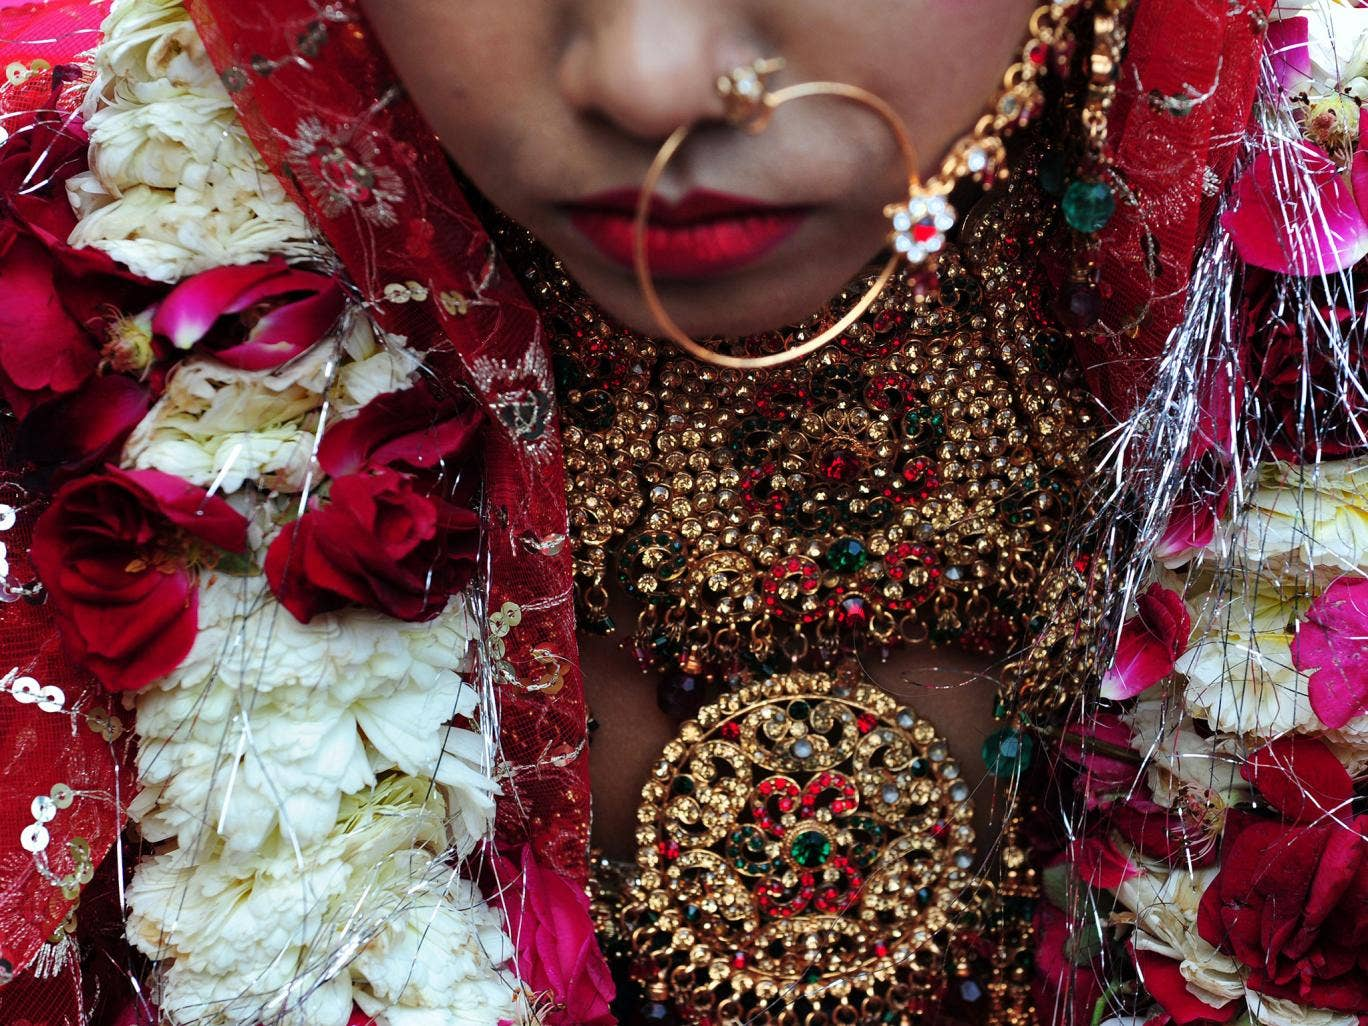 indian child bride 13 writes letter begging to stop marriage but father vows to continue